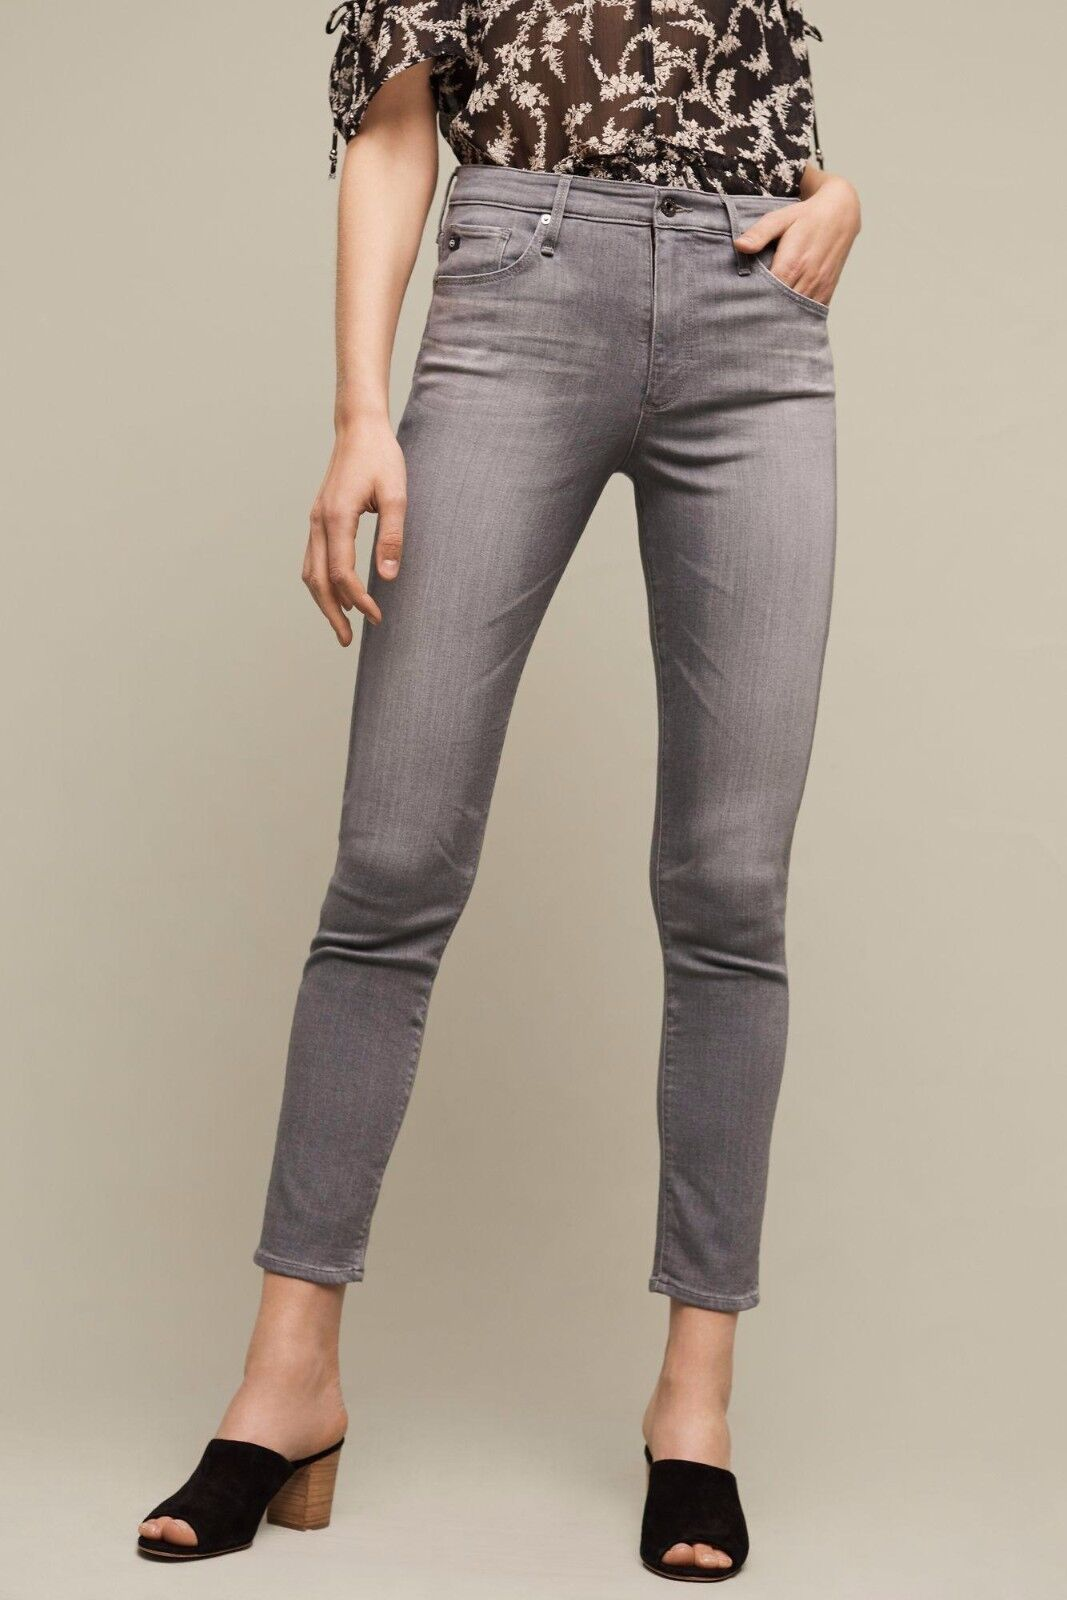 NWT AG STEVIE GHW MID-RISE SLIM STRAIGHT ANKLE JEANS 31